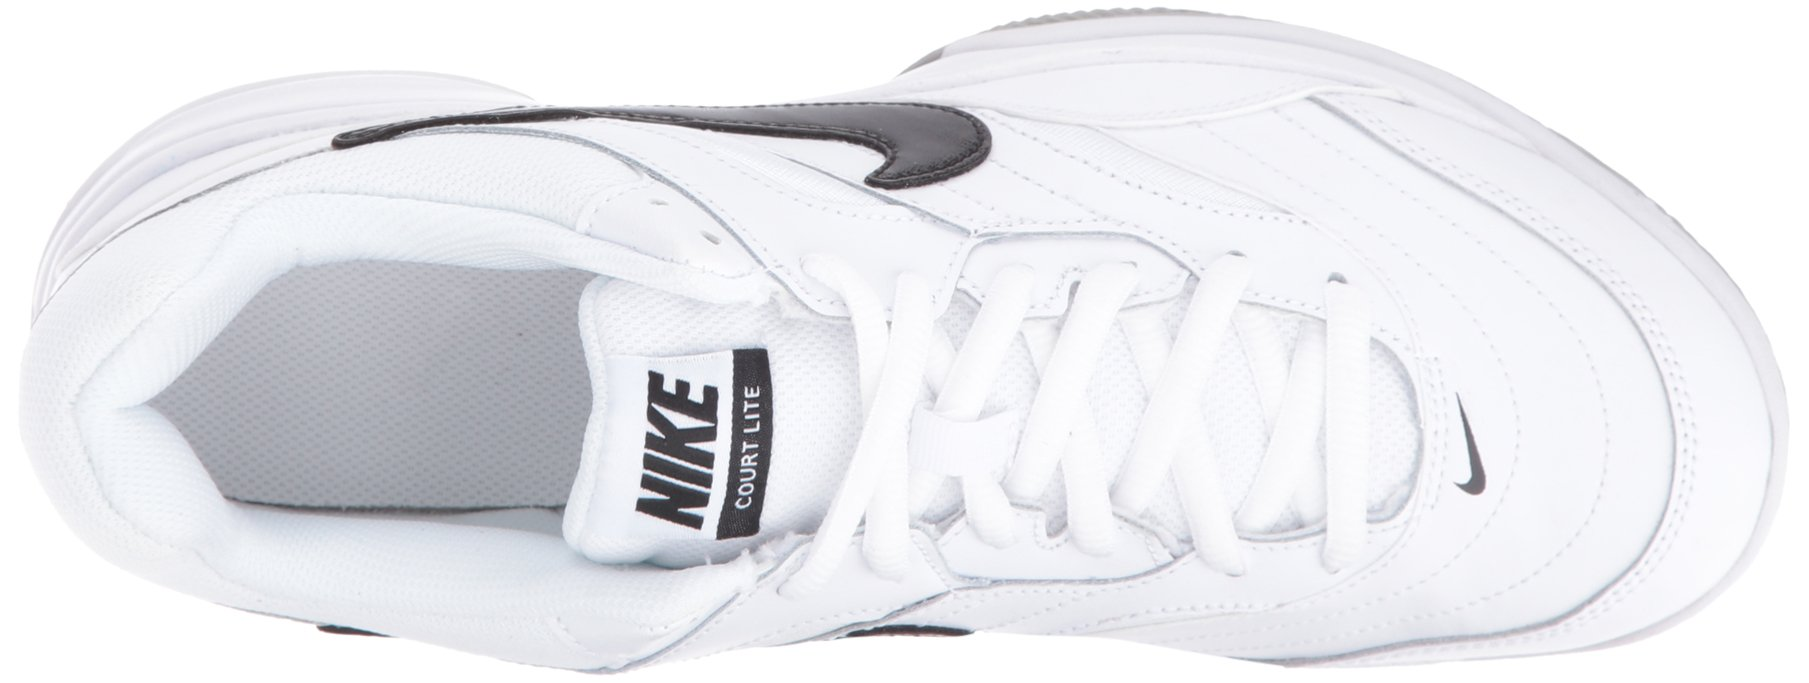 NIKE Men's Court Lite Tennis Shoe, White/Medium Grey/Black, 6.5 D(M) US by Nike (Image #8)